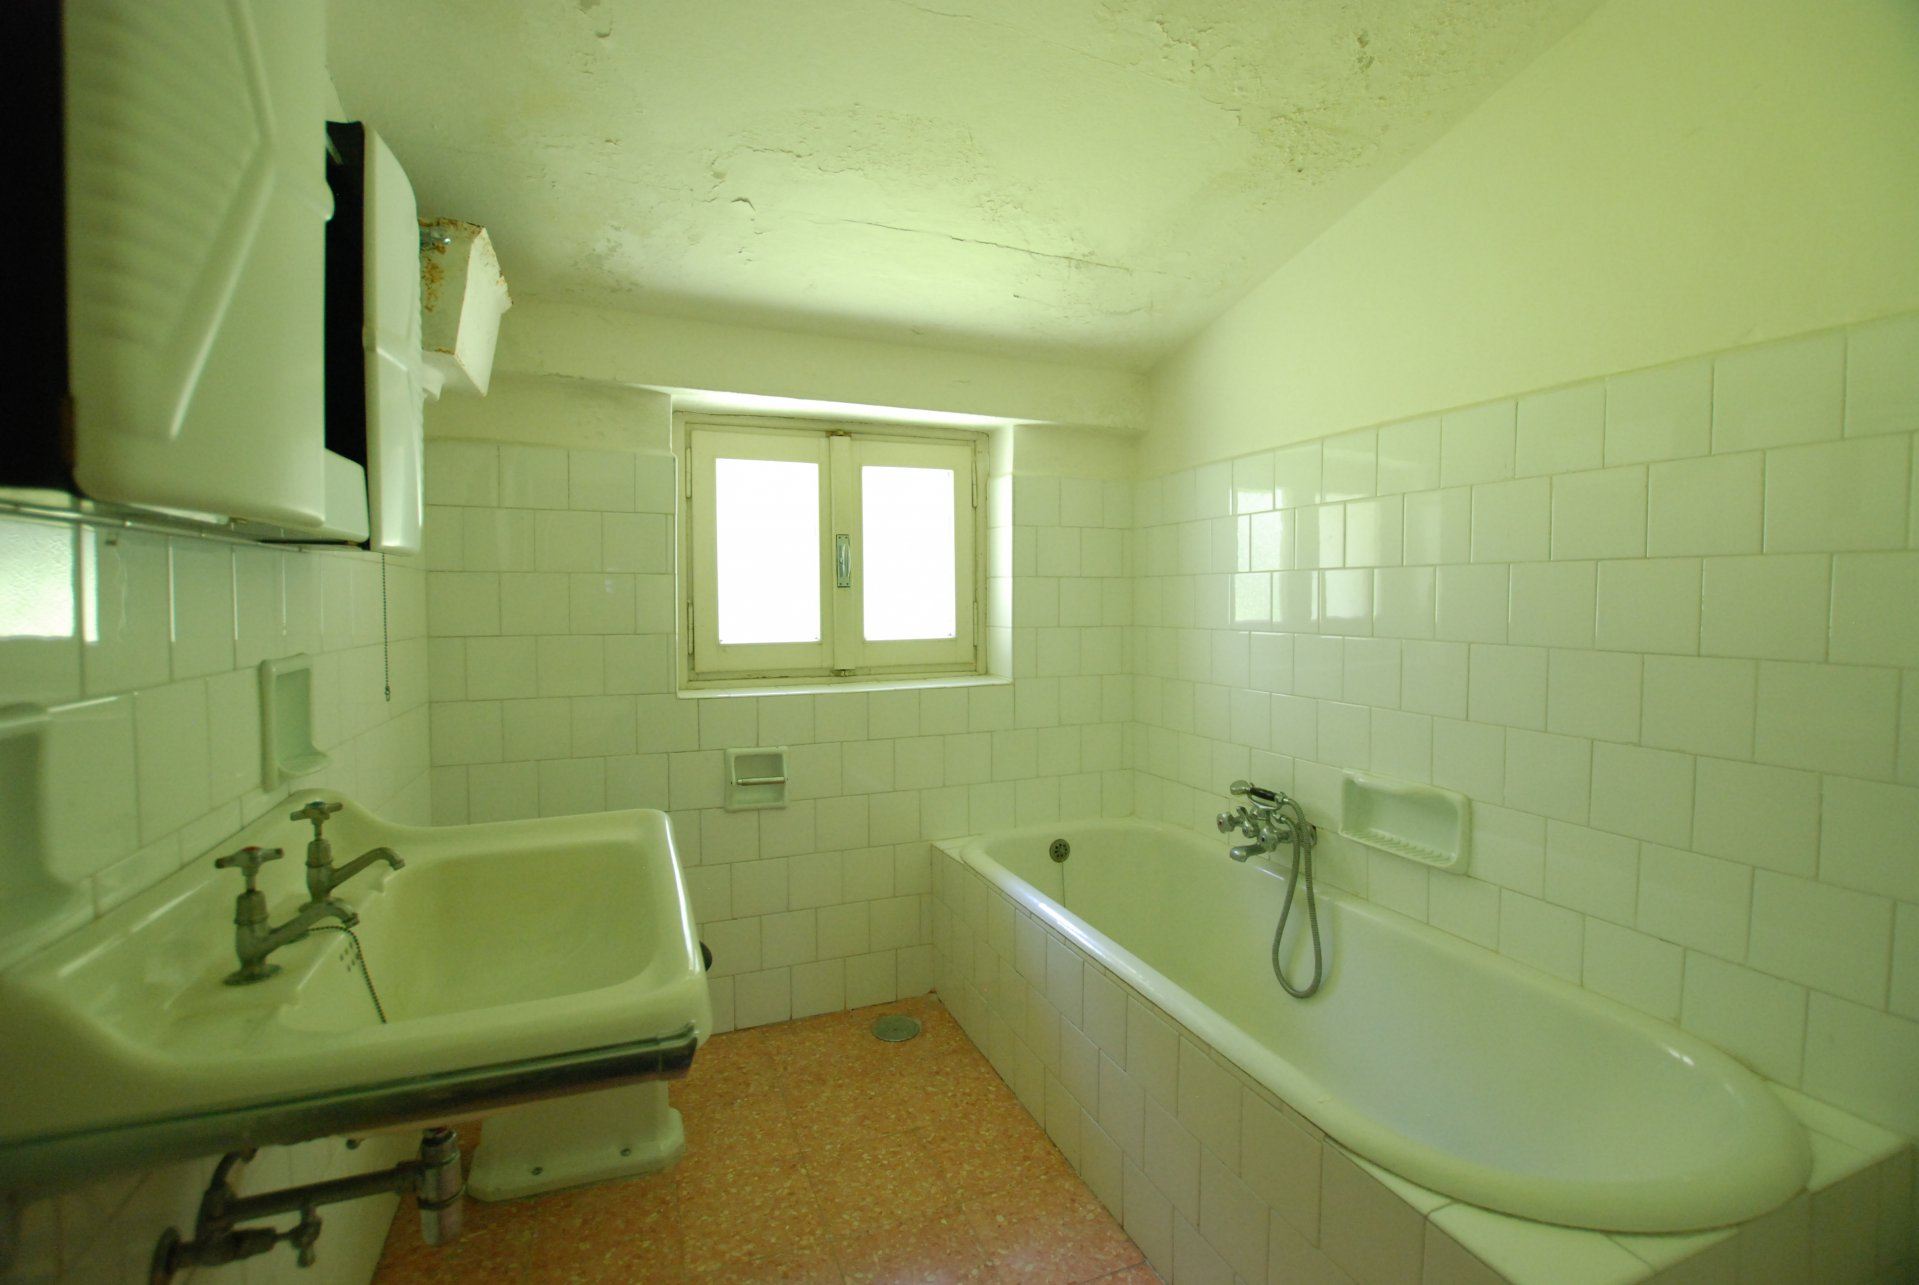 Period villa to be restored for sale in Gignese centre -  bathroom with tub